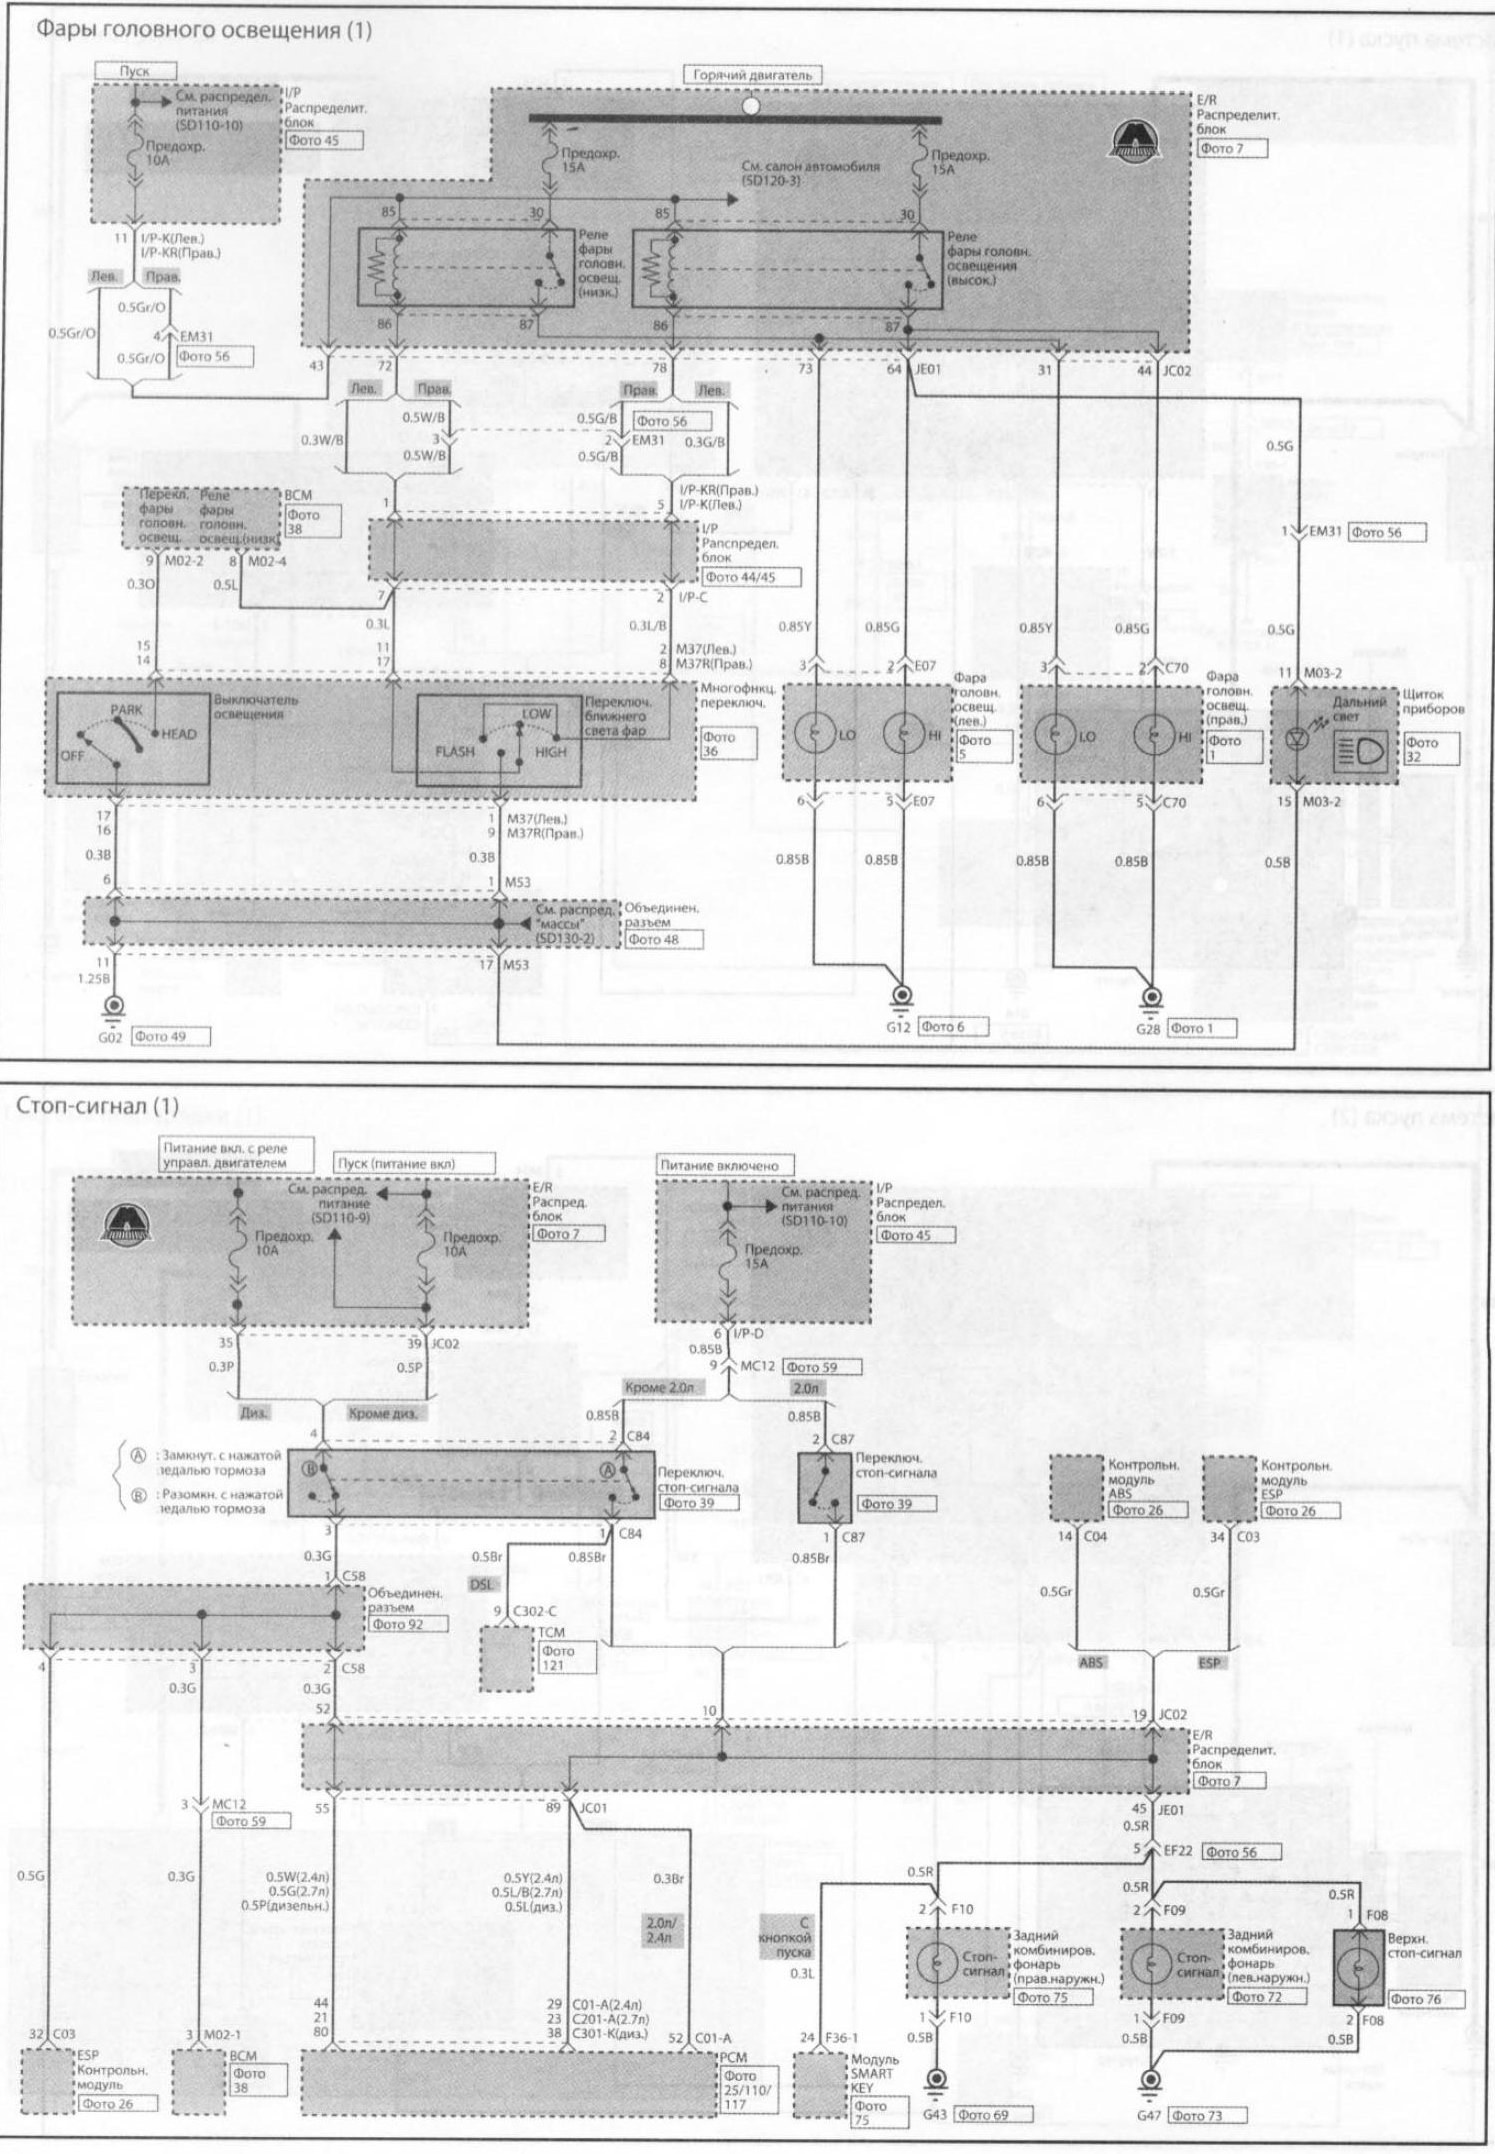 2013 Kia Optima Wiring Schematic Example Electrical Wiring Diagram \u2022 2005  Kia Sorento Radio Wiring Diagram 2013 Kia Optima Pcm Wiring Diagram